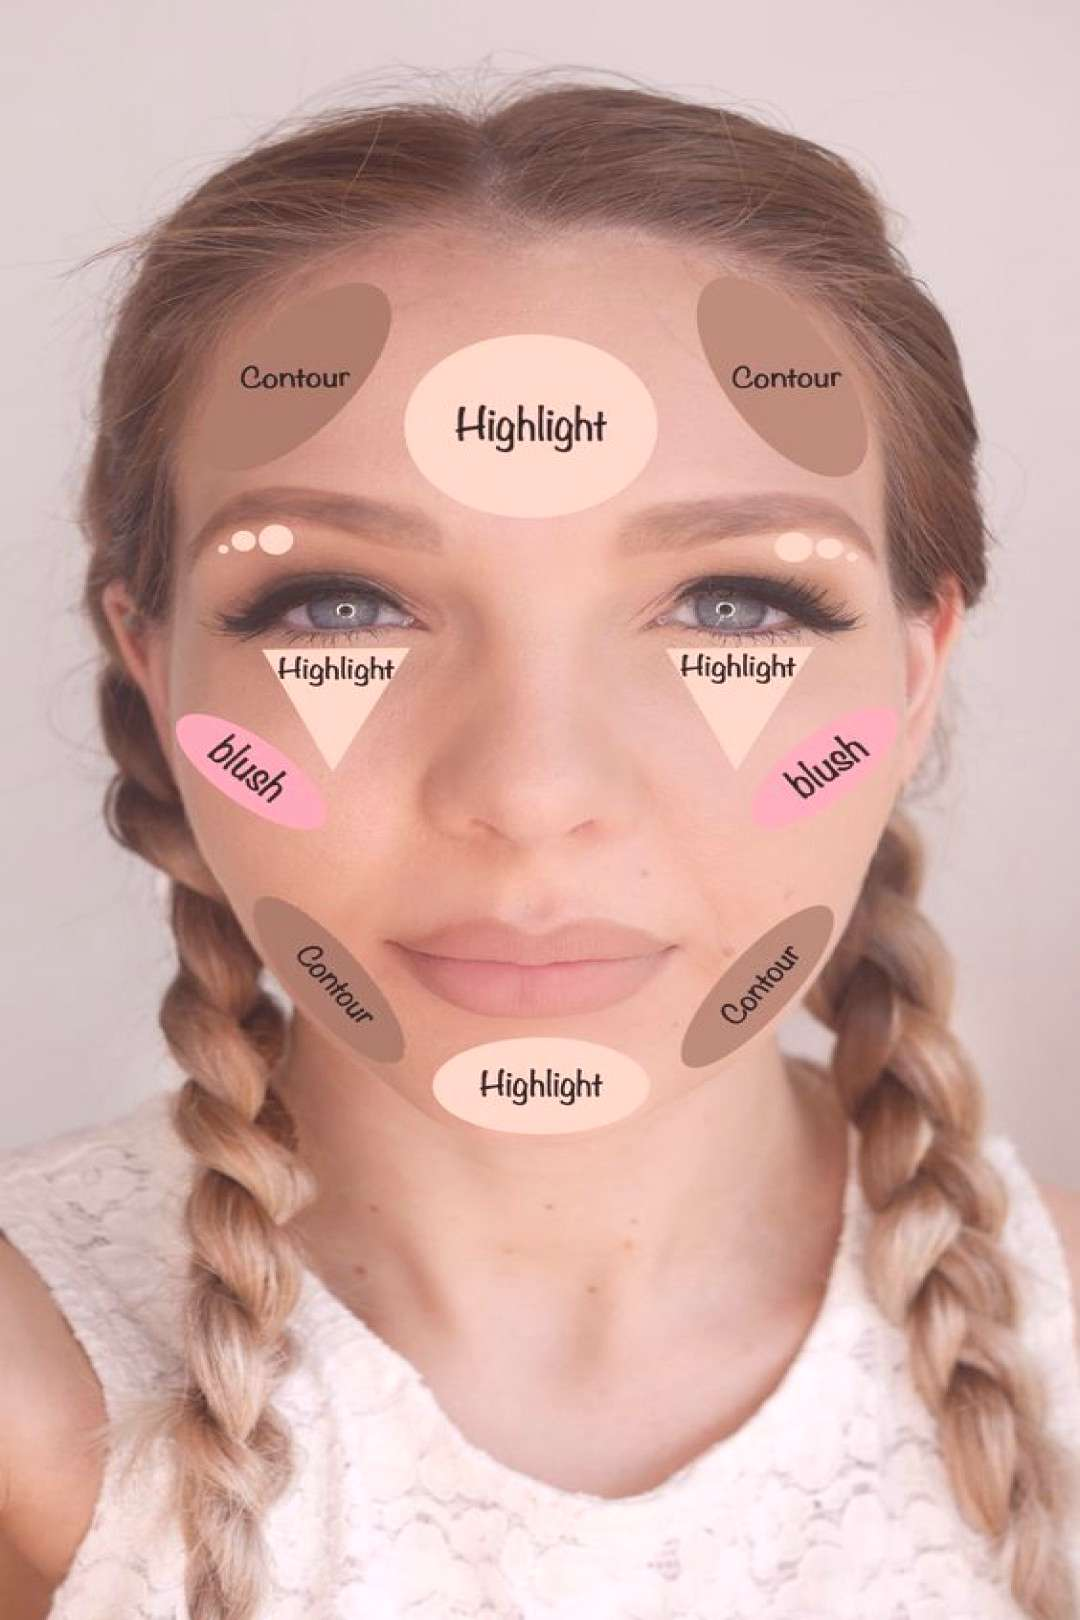 there's like a million contouring guides out there... why did they have to creat...#contouring